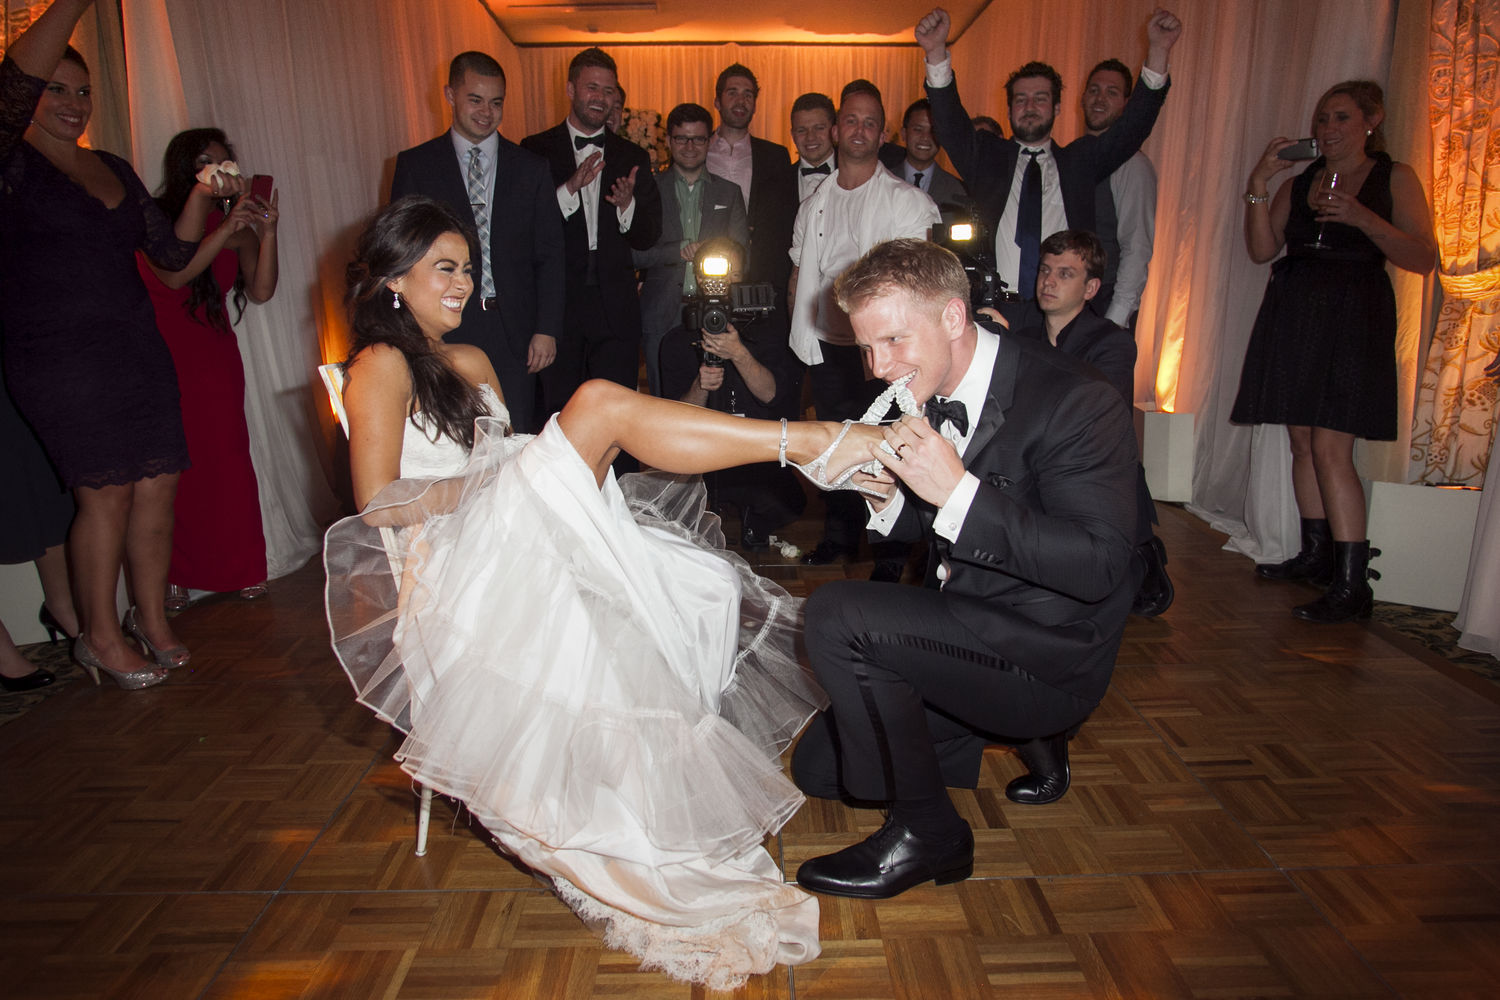 wedding-abc-bachelor-sean-lowe-catherine-guidici-johnandjoseph204.jpg